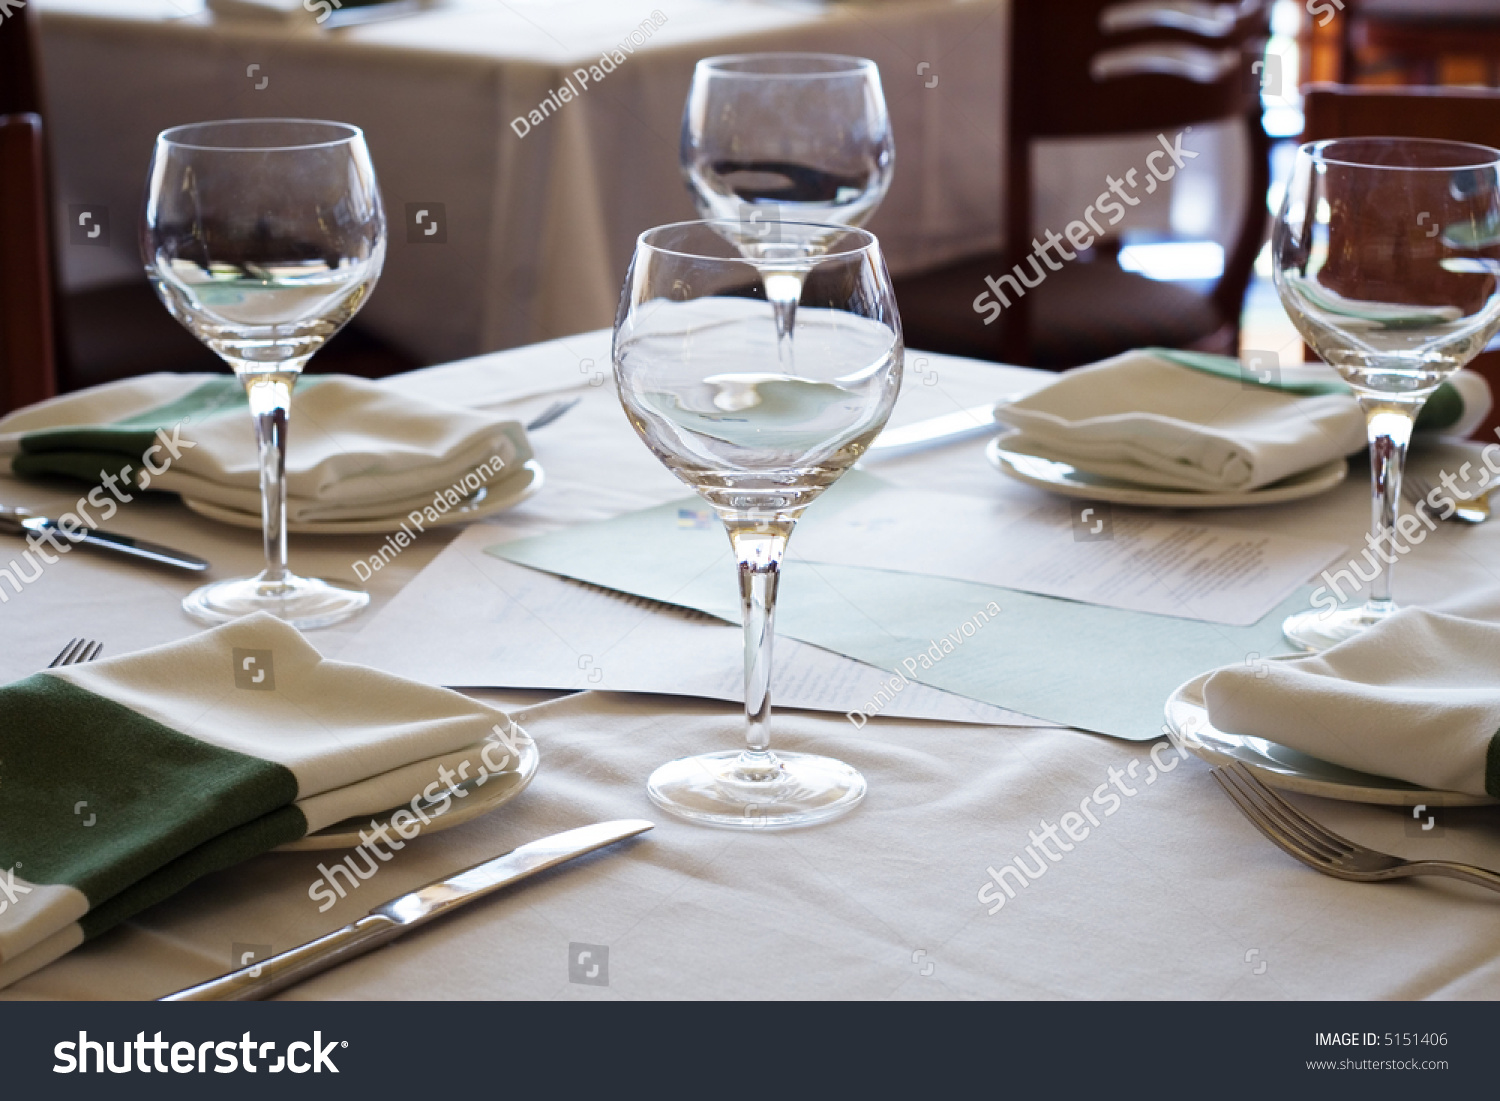 Fancy restaurant table setting - A Table Setting At A Fancy Restaurant